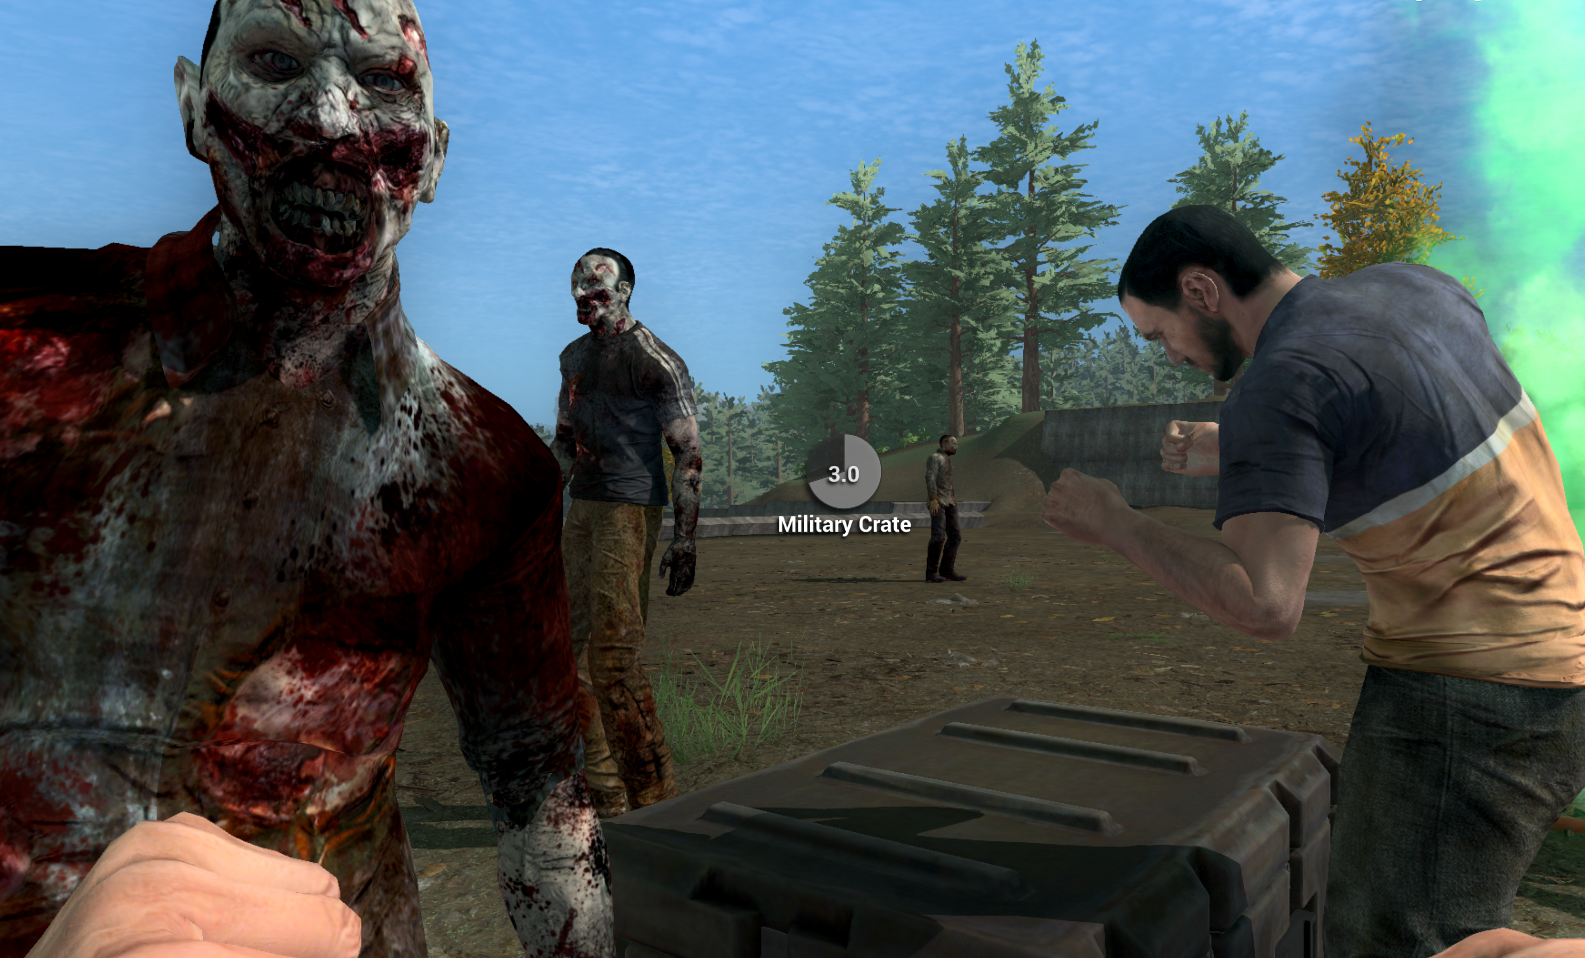 H1Z1 launch impressions: battling zombies and server issues